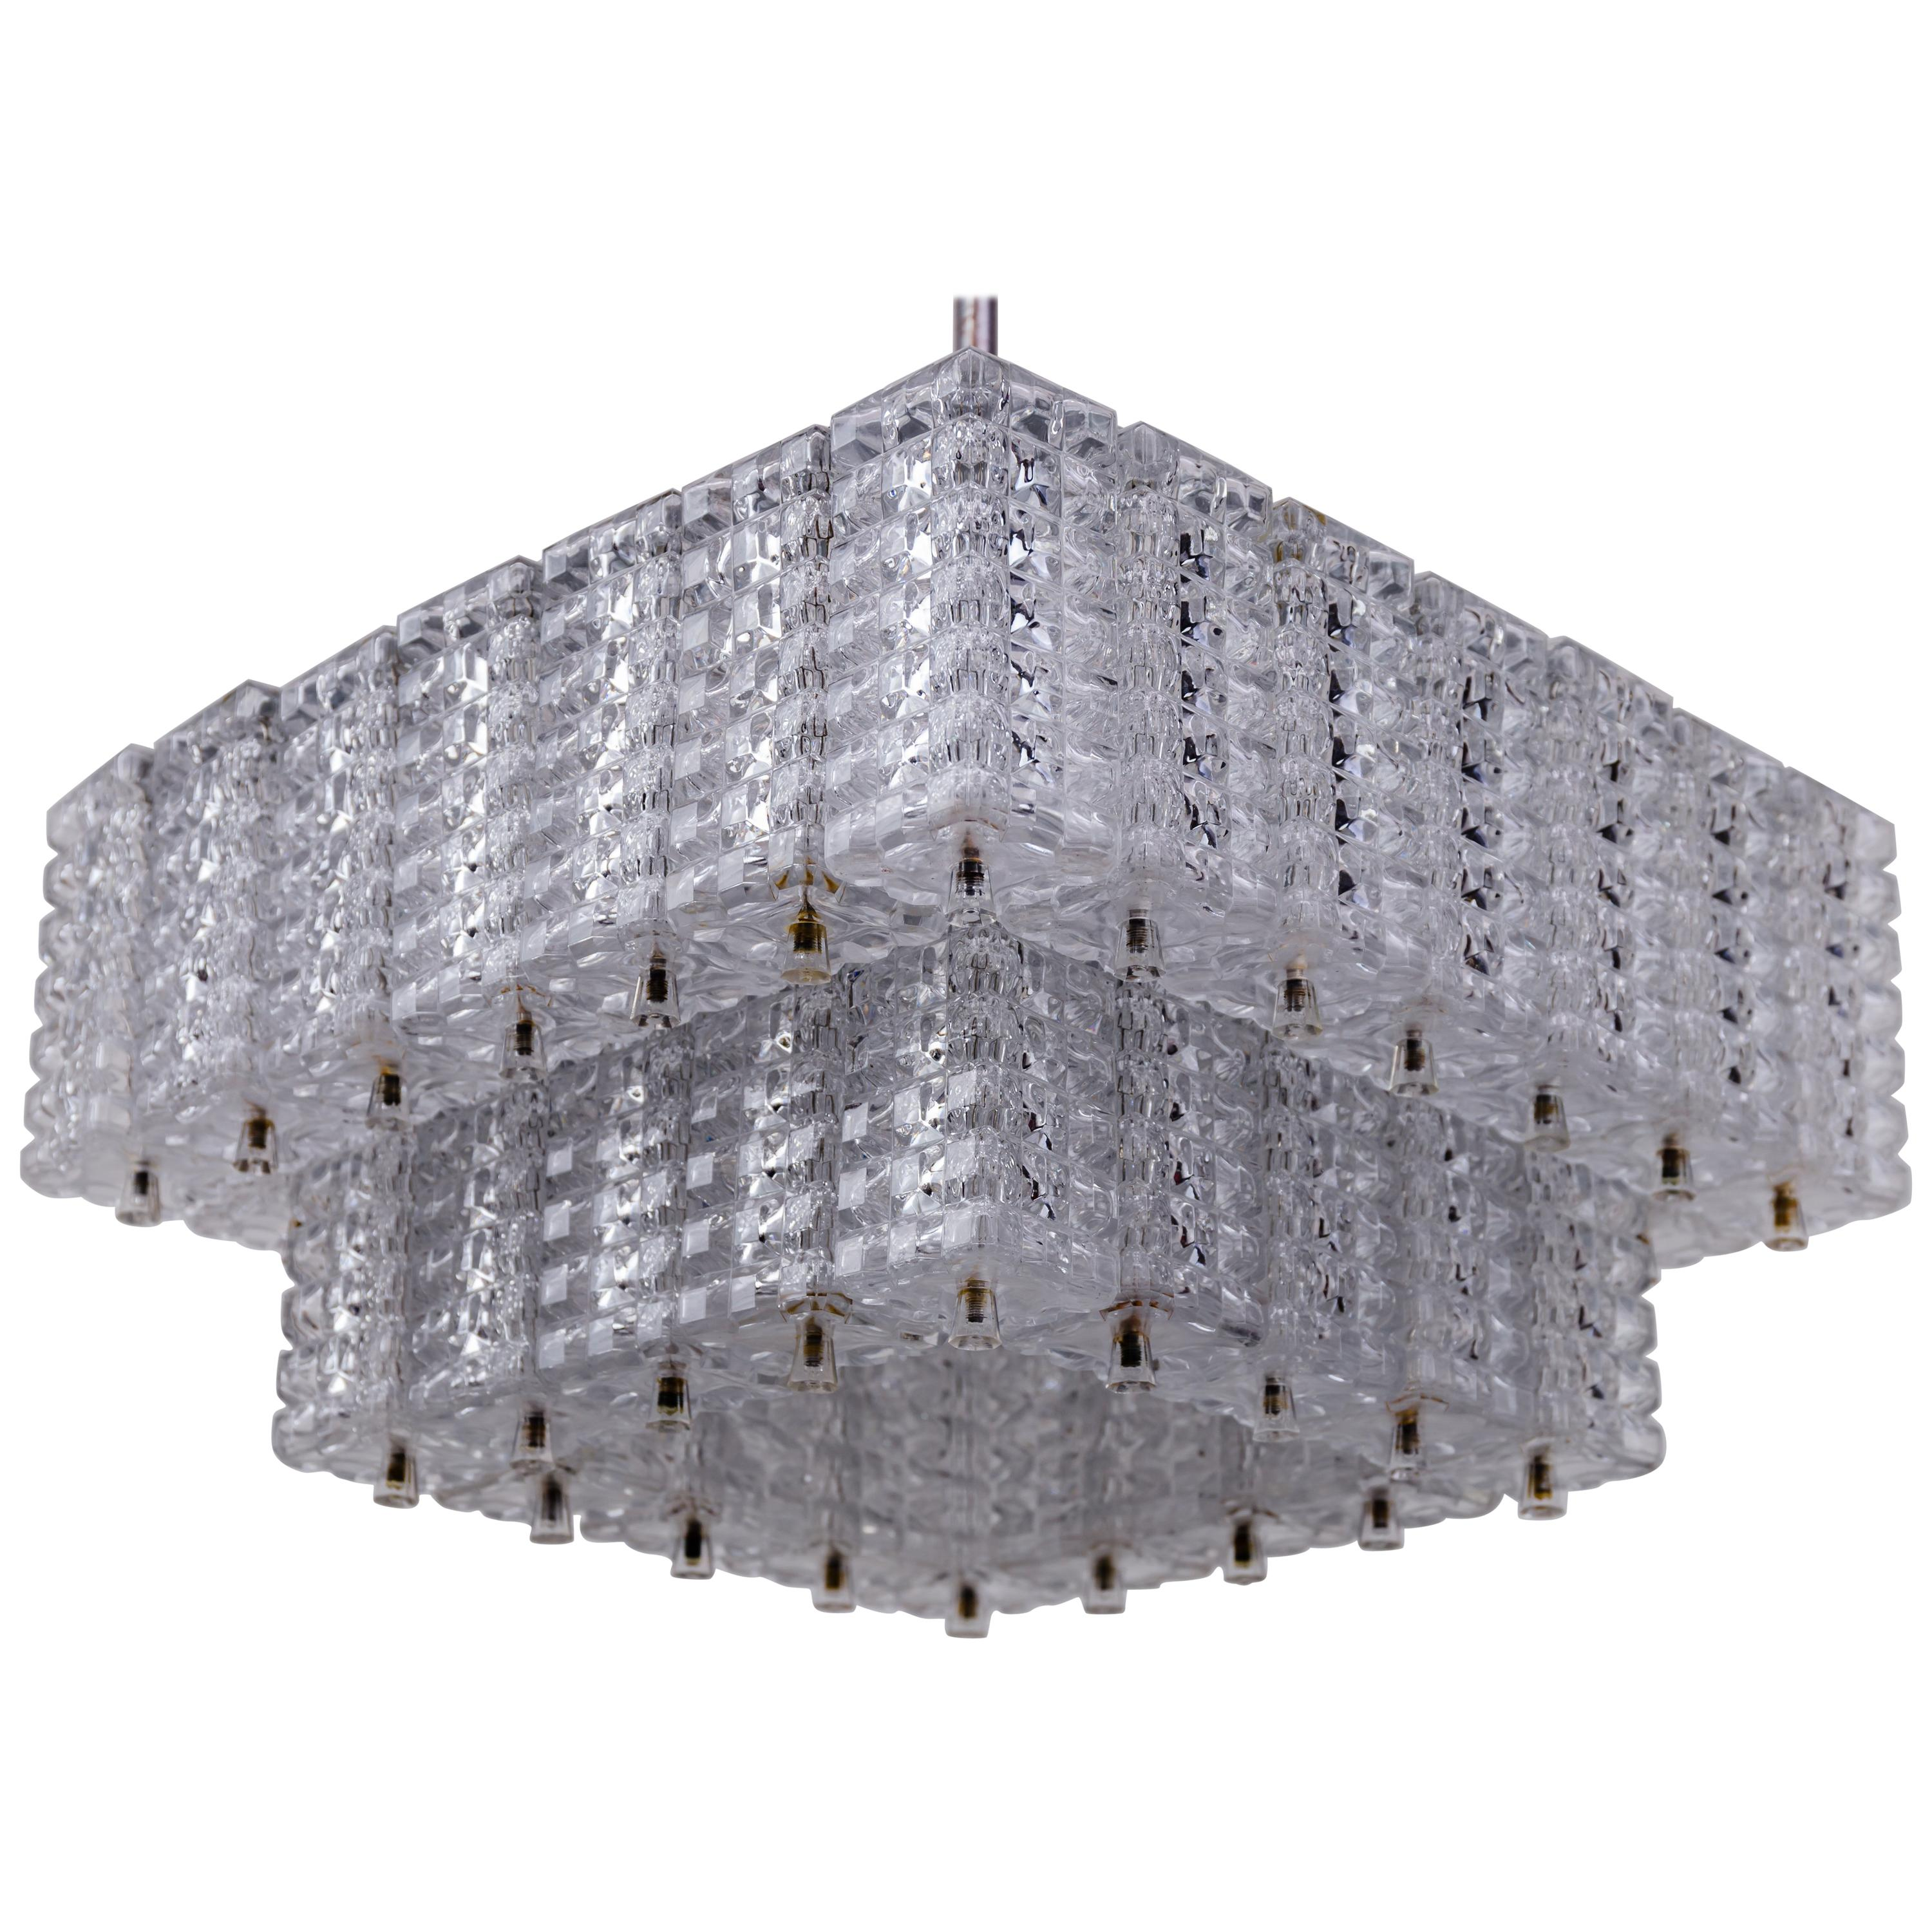 Nickel plated chandelier by Austrolux 1960s